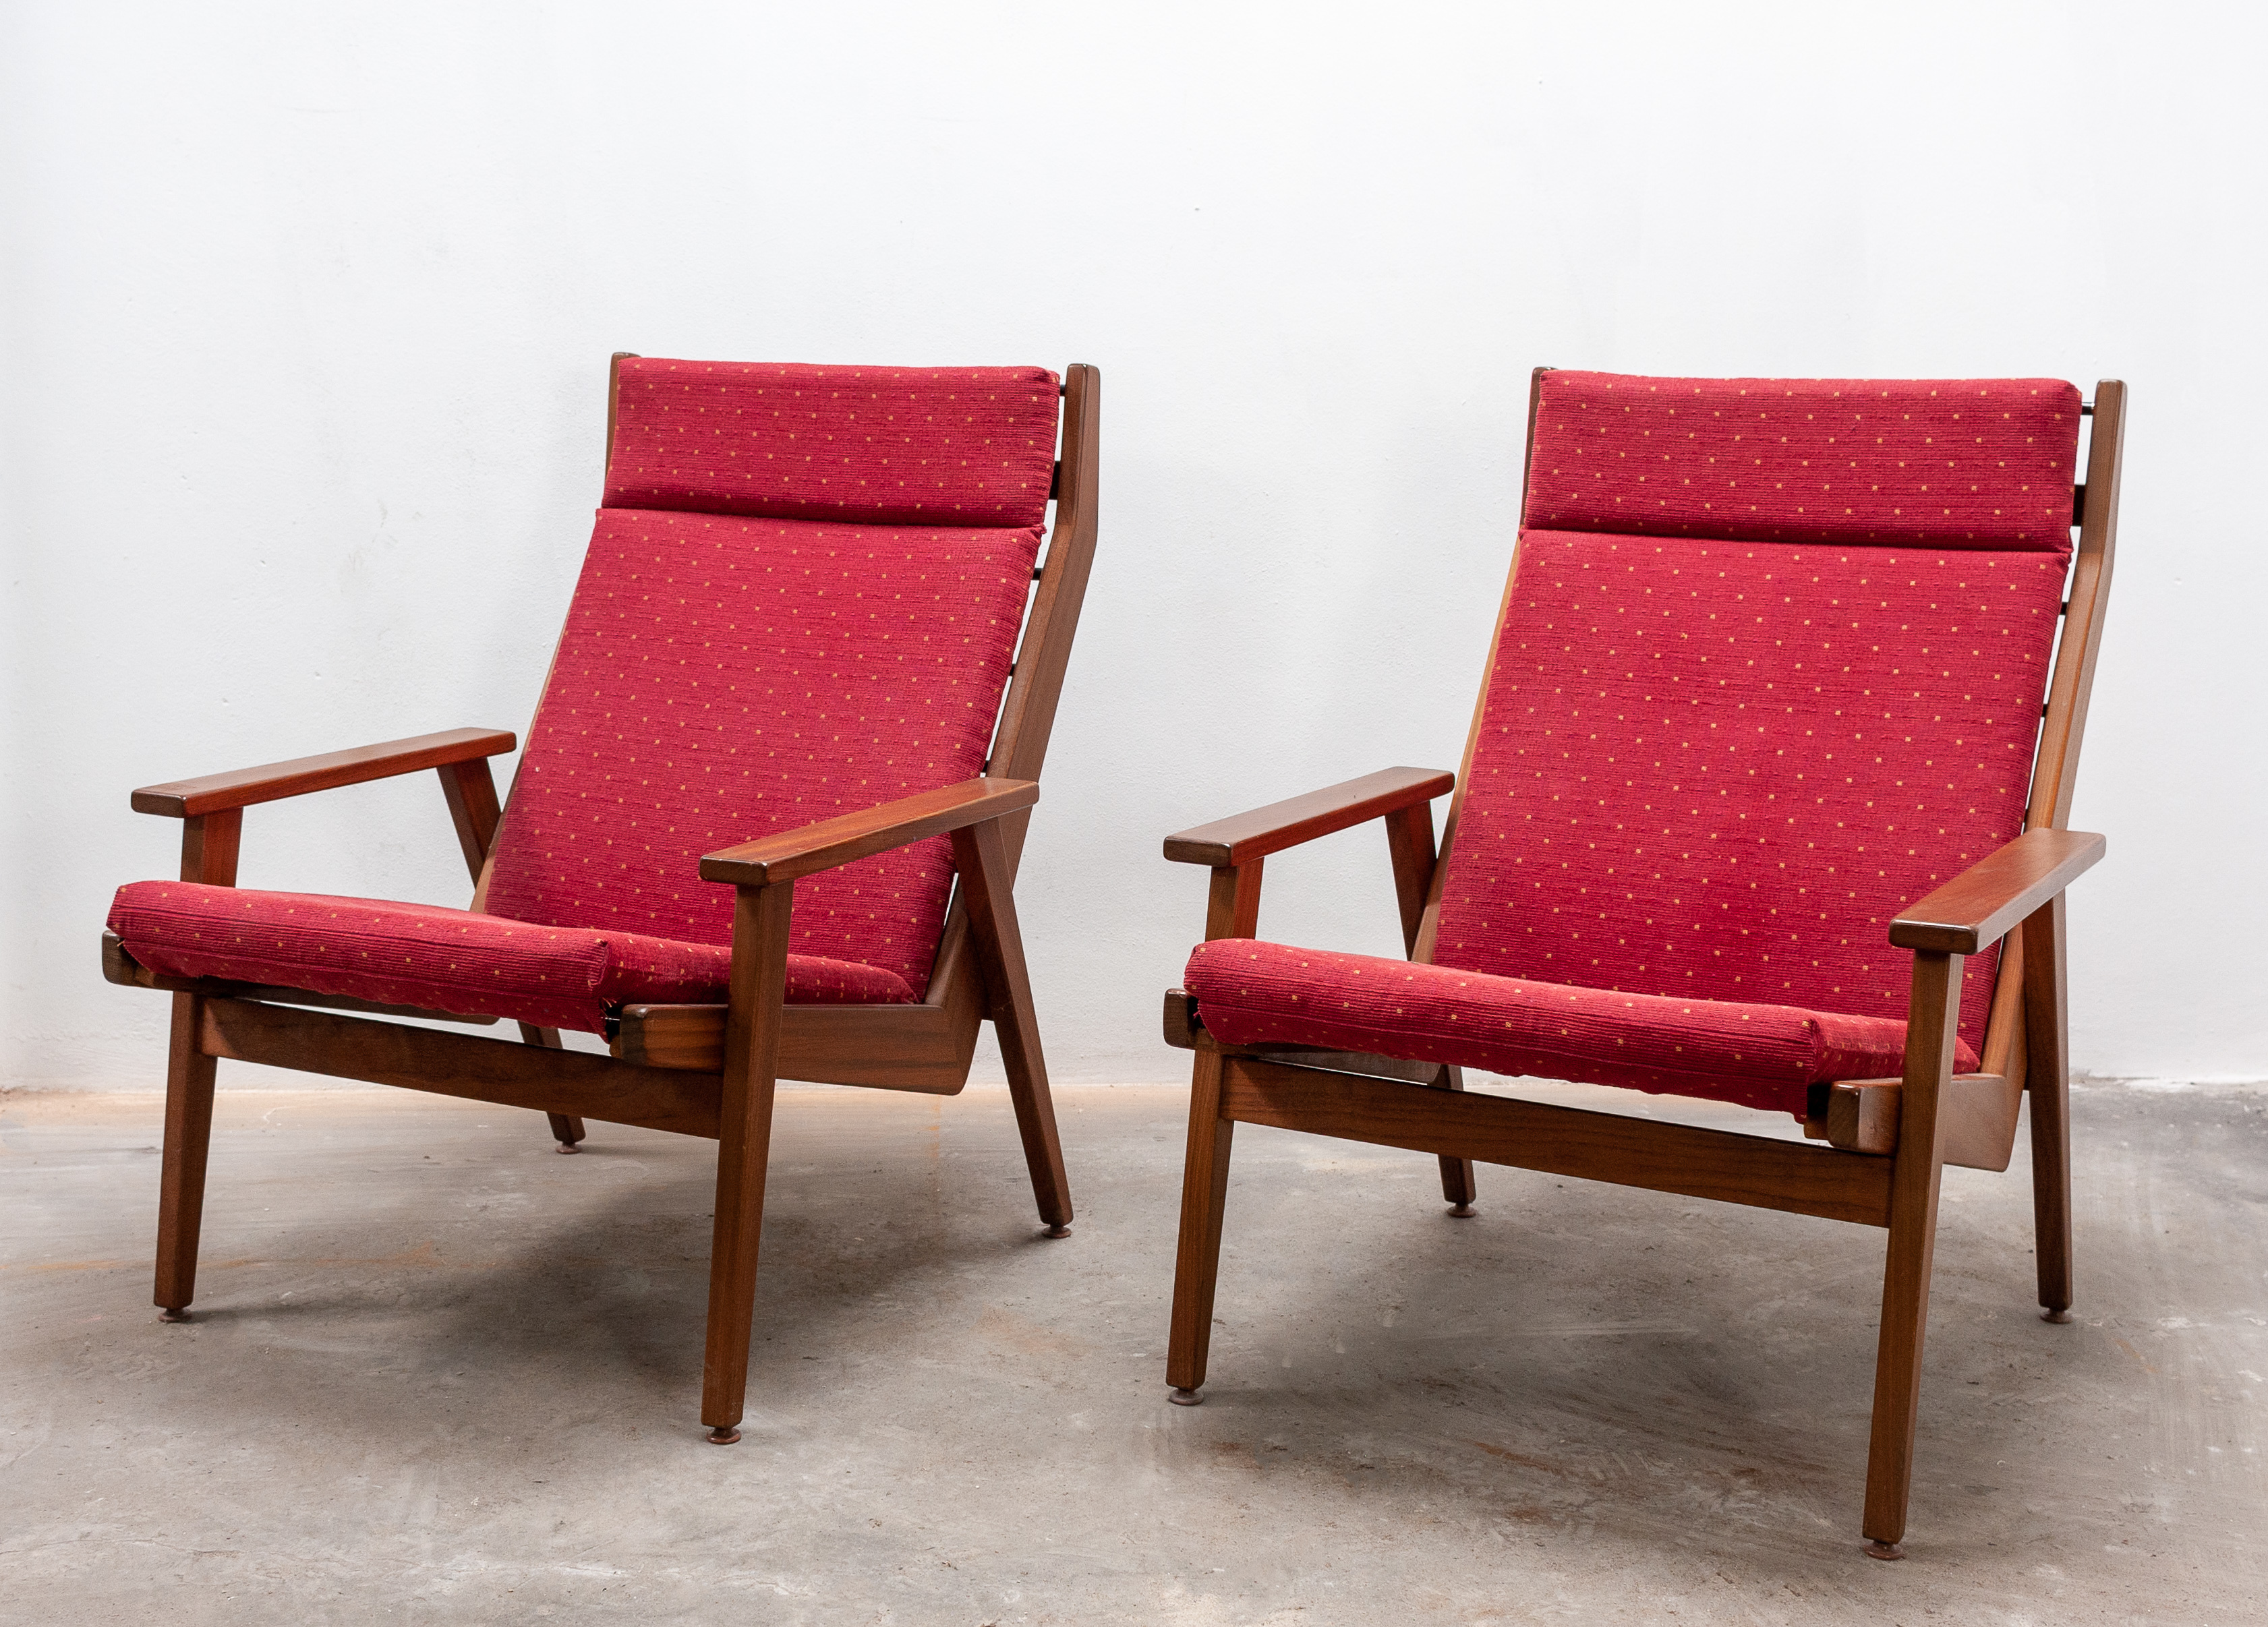 Pleasant Two Rob Parry Lotus Lounge Chairs 1950S Pdpeps Interior Chair Design Pdpepsorg